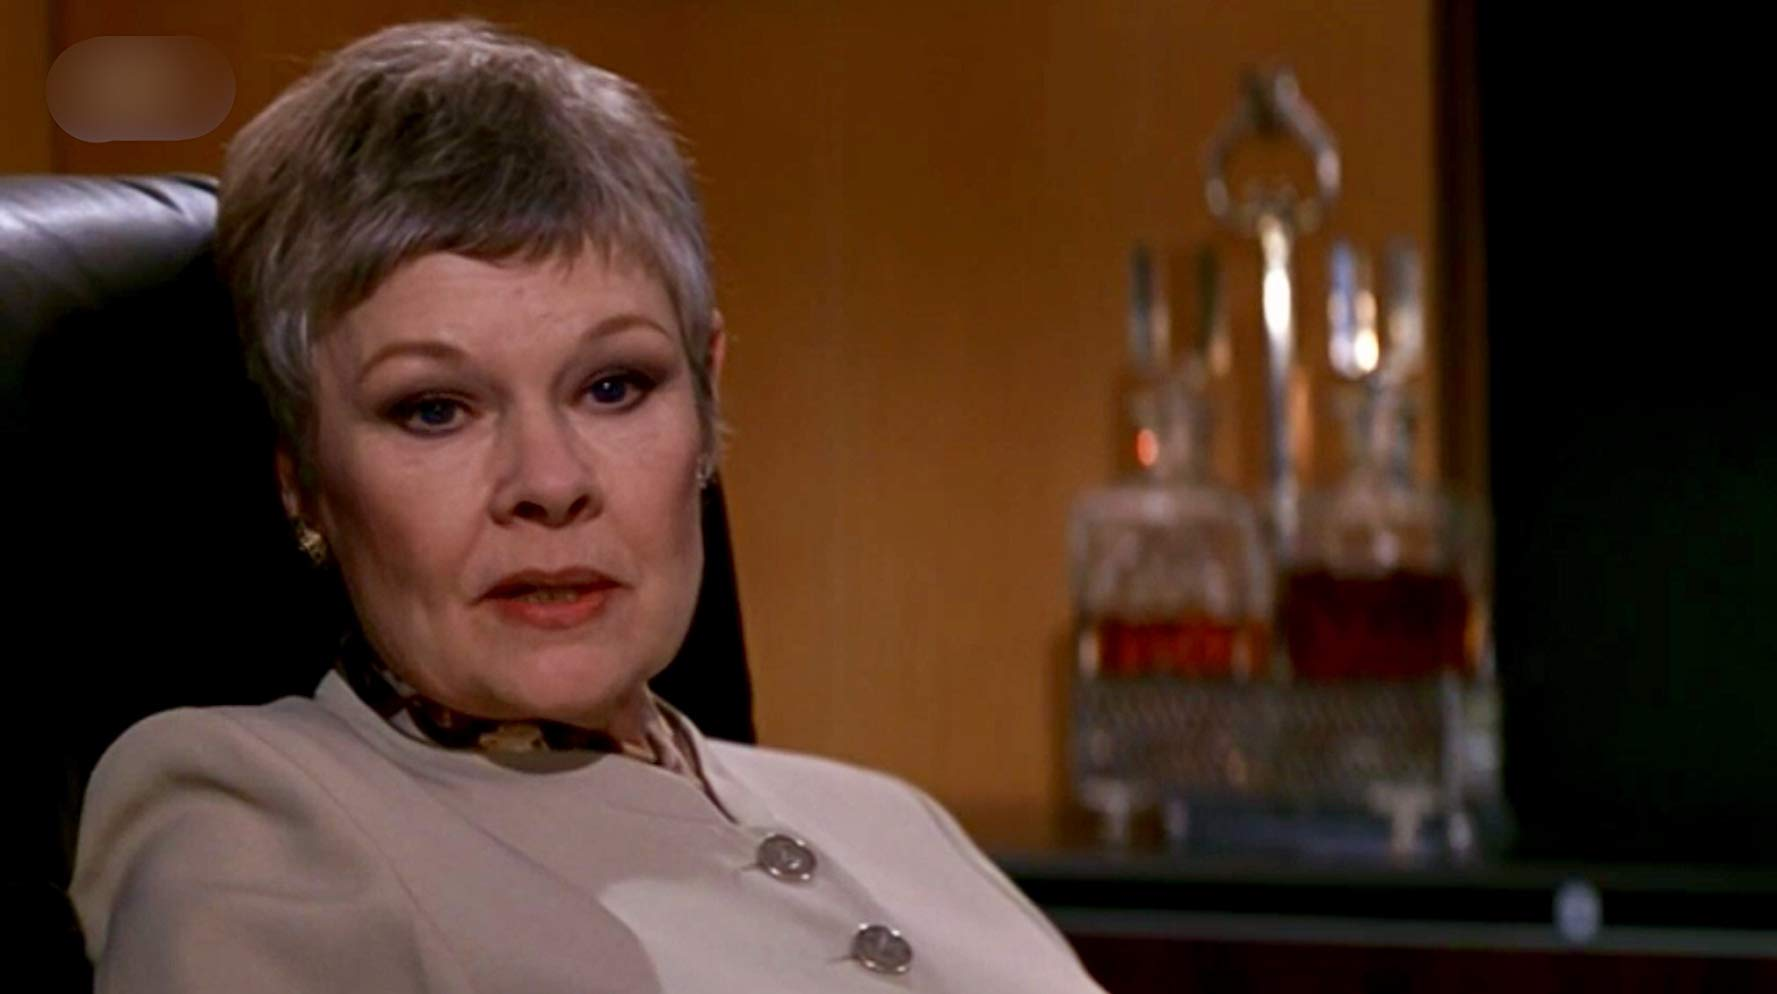 Judi Dench as M in Goldeneye (1995)